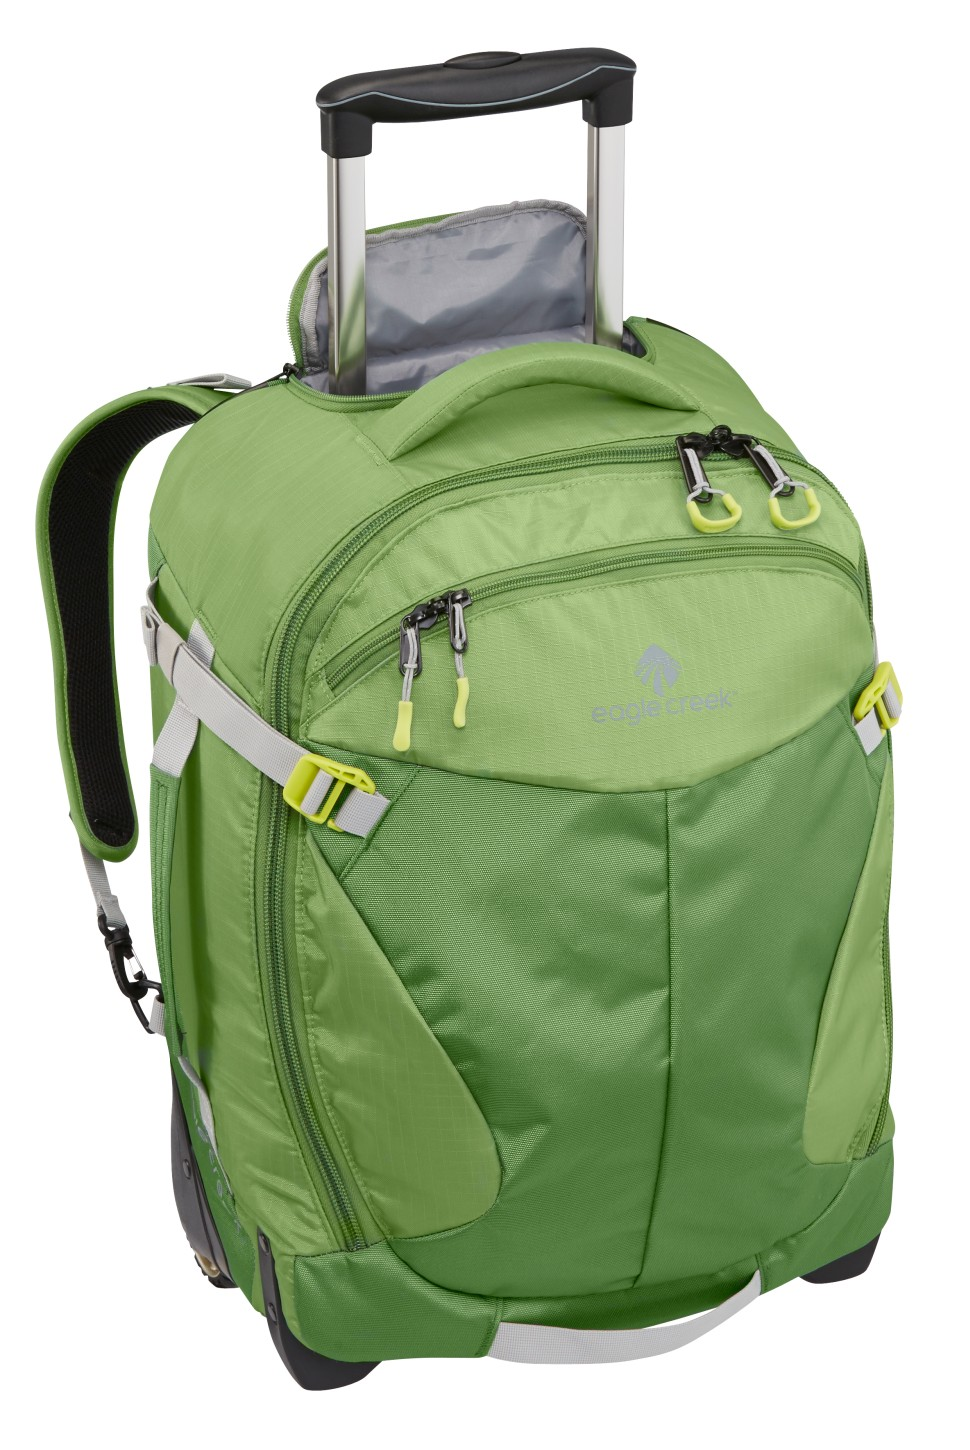 Eagle Creek Actify Wheeled Backpack International Carry-On sage-30